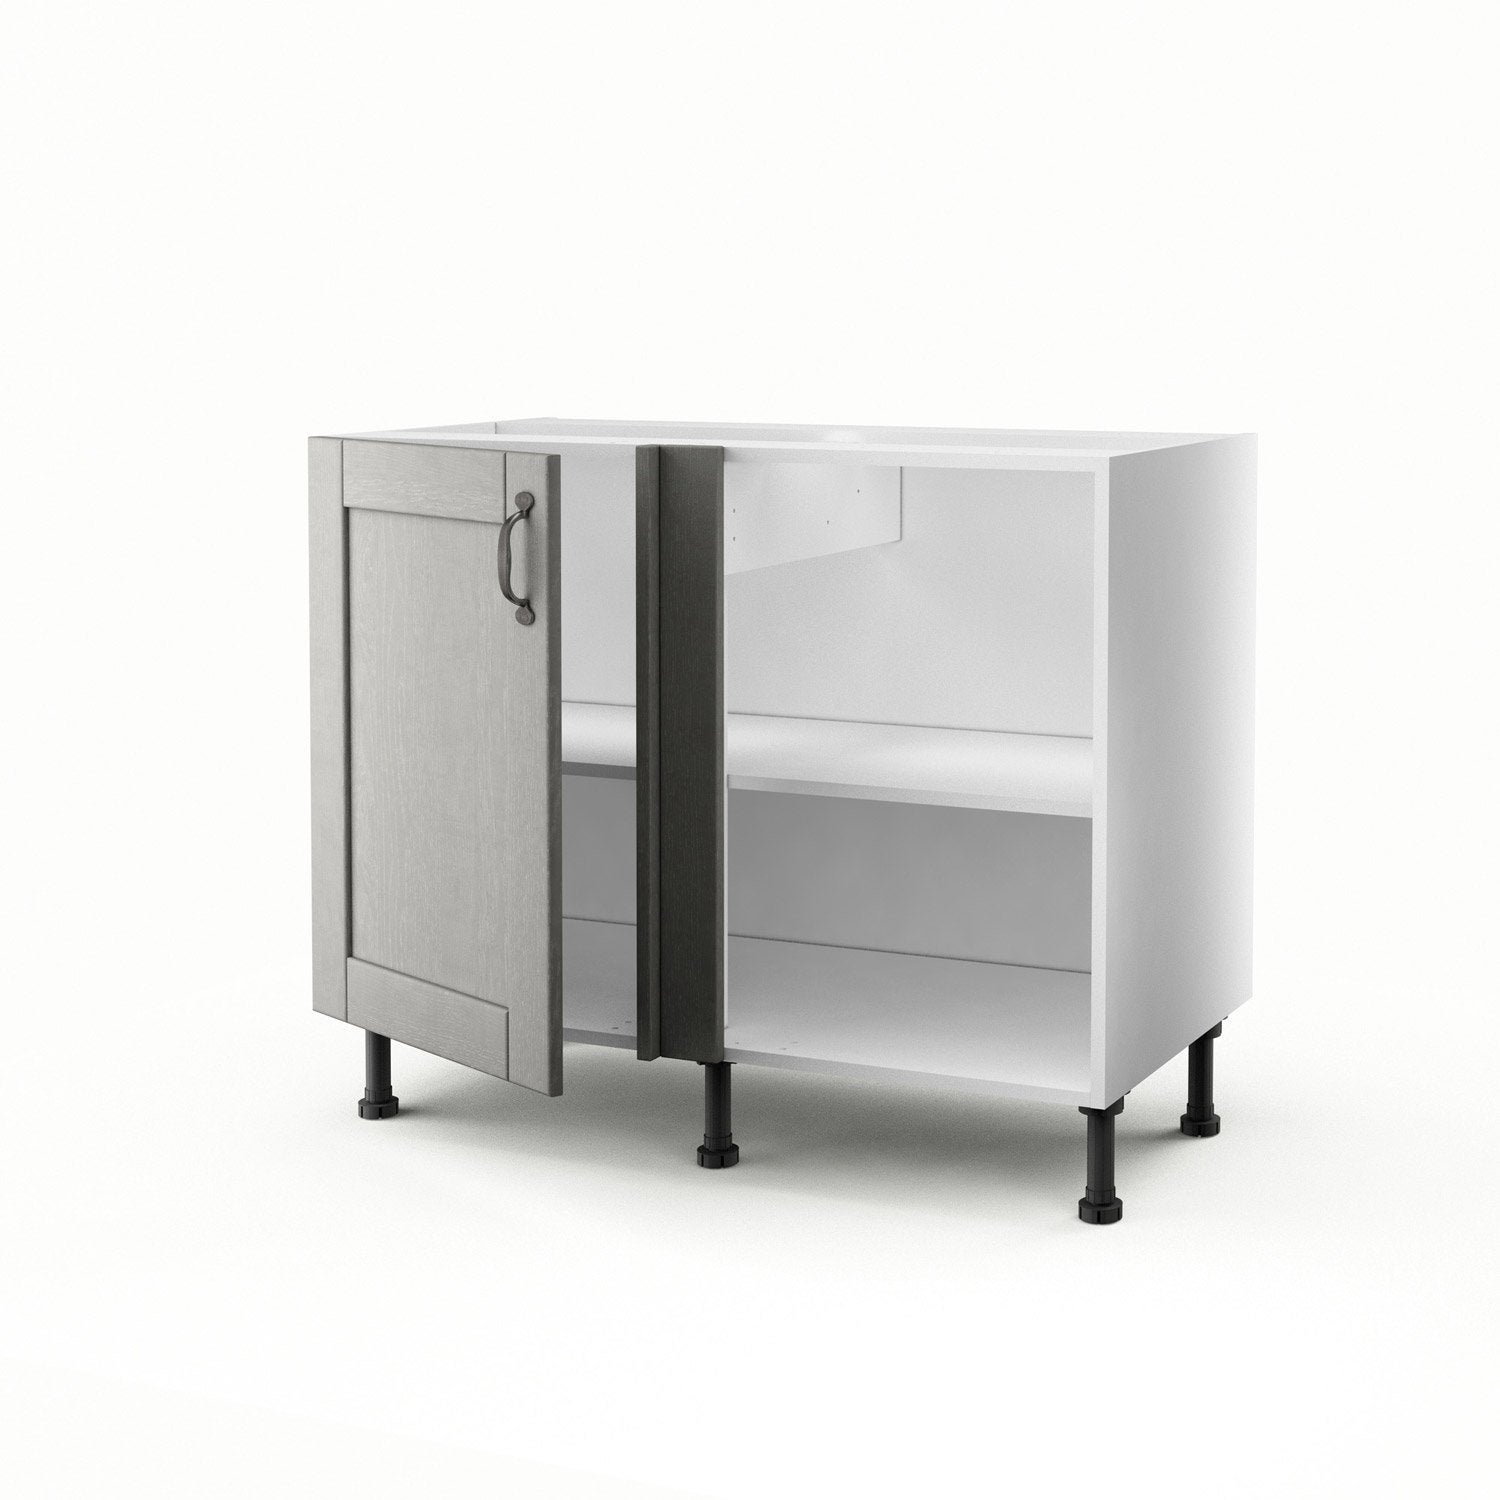 meuble de cuisine bas d 39 angle gris 1 porte nuage x x cm leroy merlin. Black Bedroom Furniture Sets. Home Design Ideas